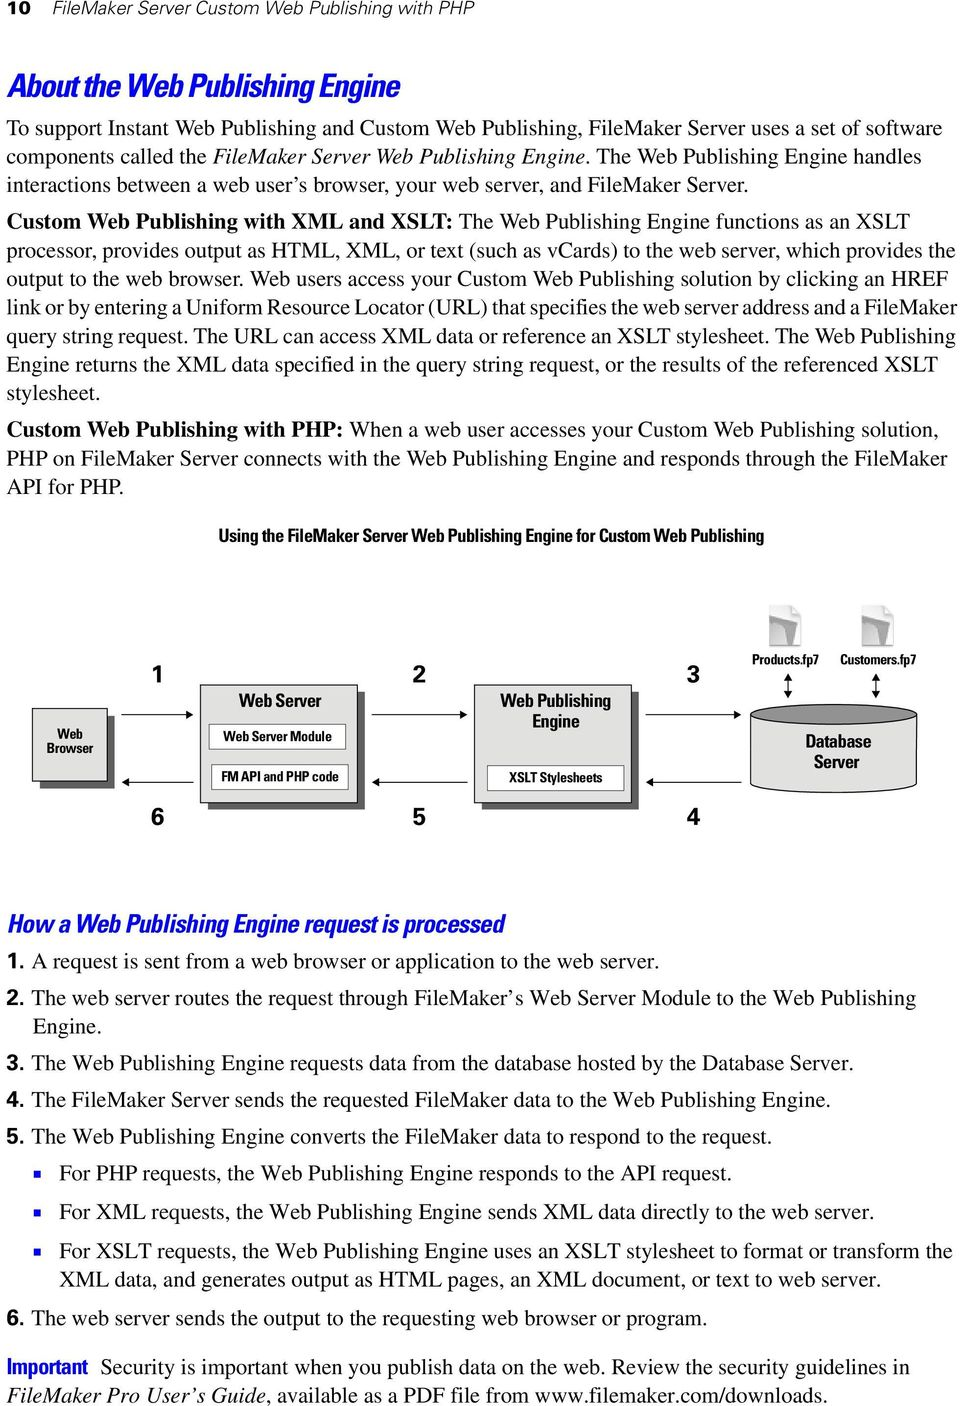 Custom Web Publishing with XML and XSLT: The Web Publishing Engine functions as an XSLT processor, provides output as HTML, XML, or text (such as vcards) to the web server, which provides the output